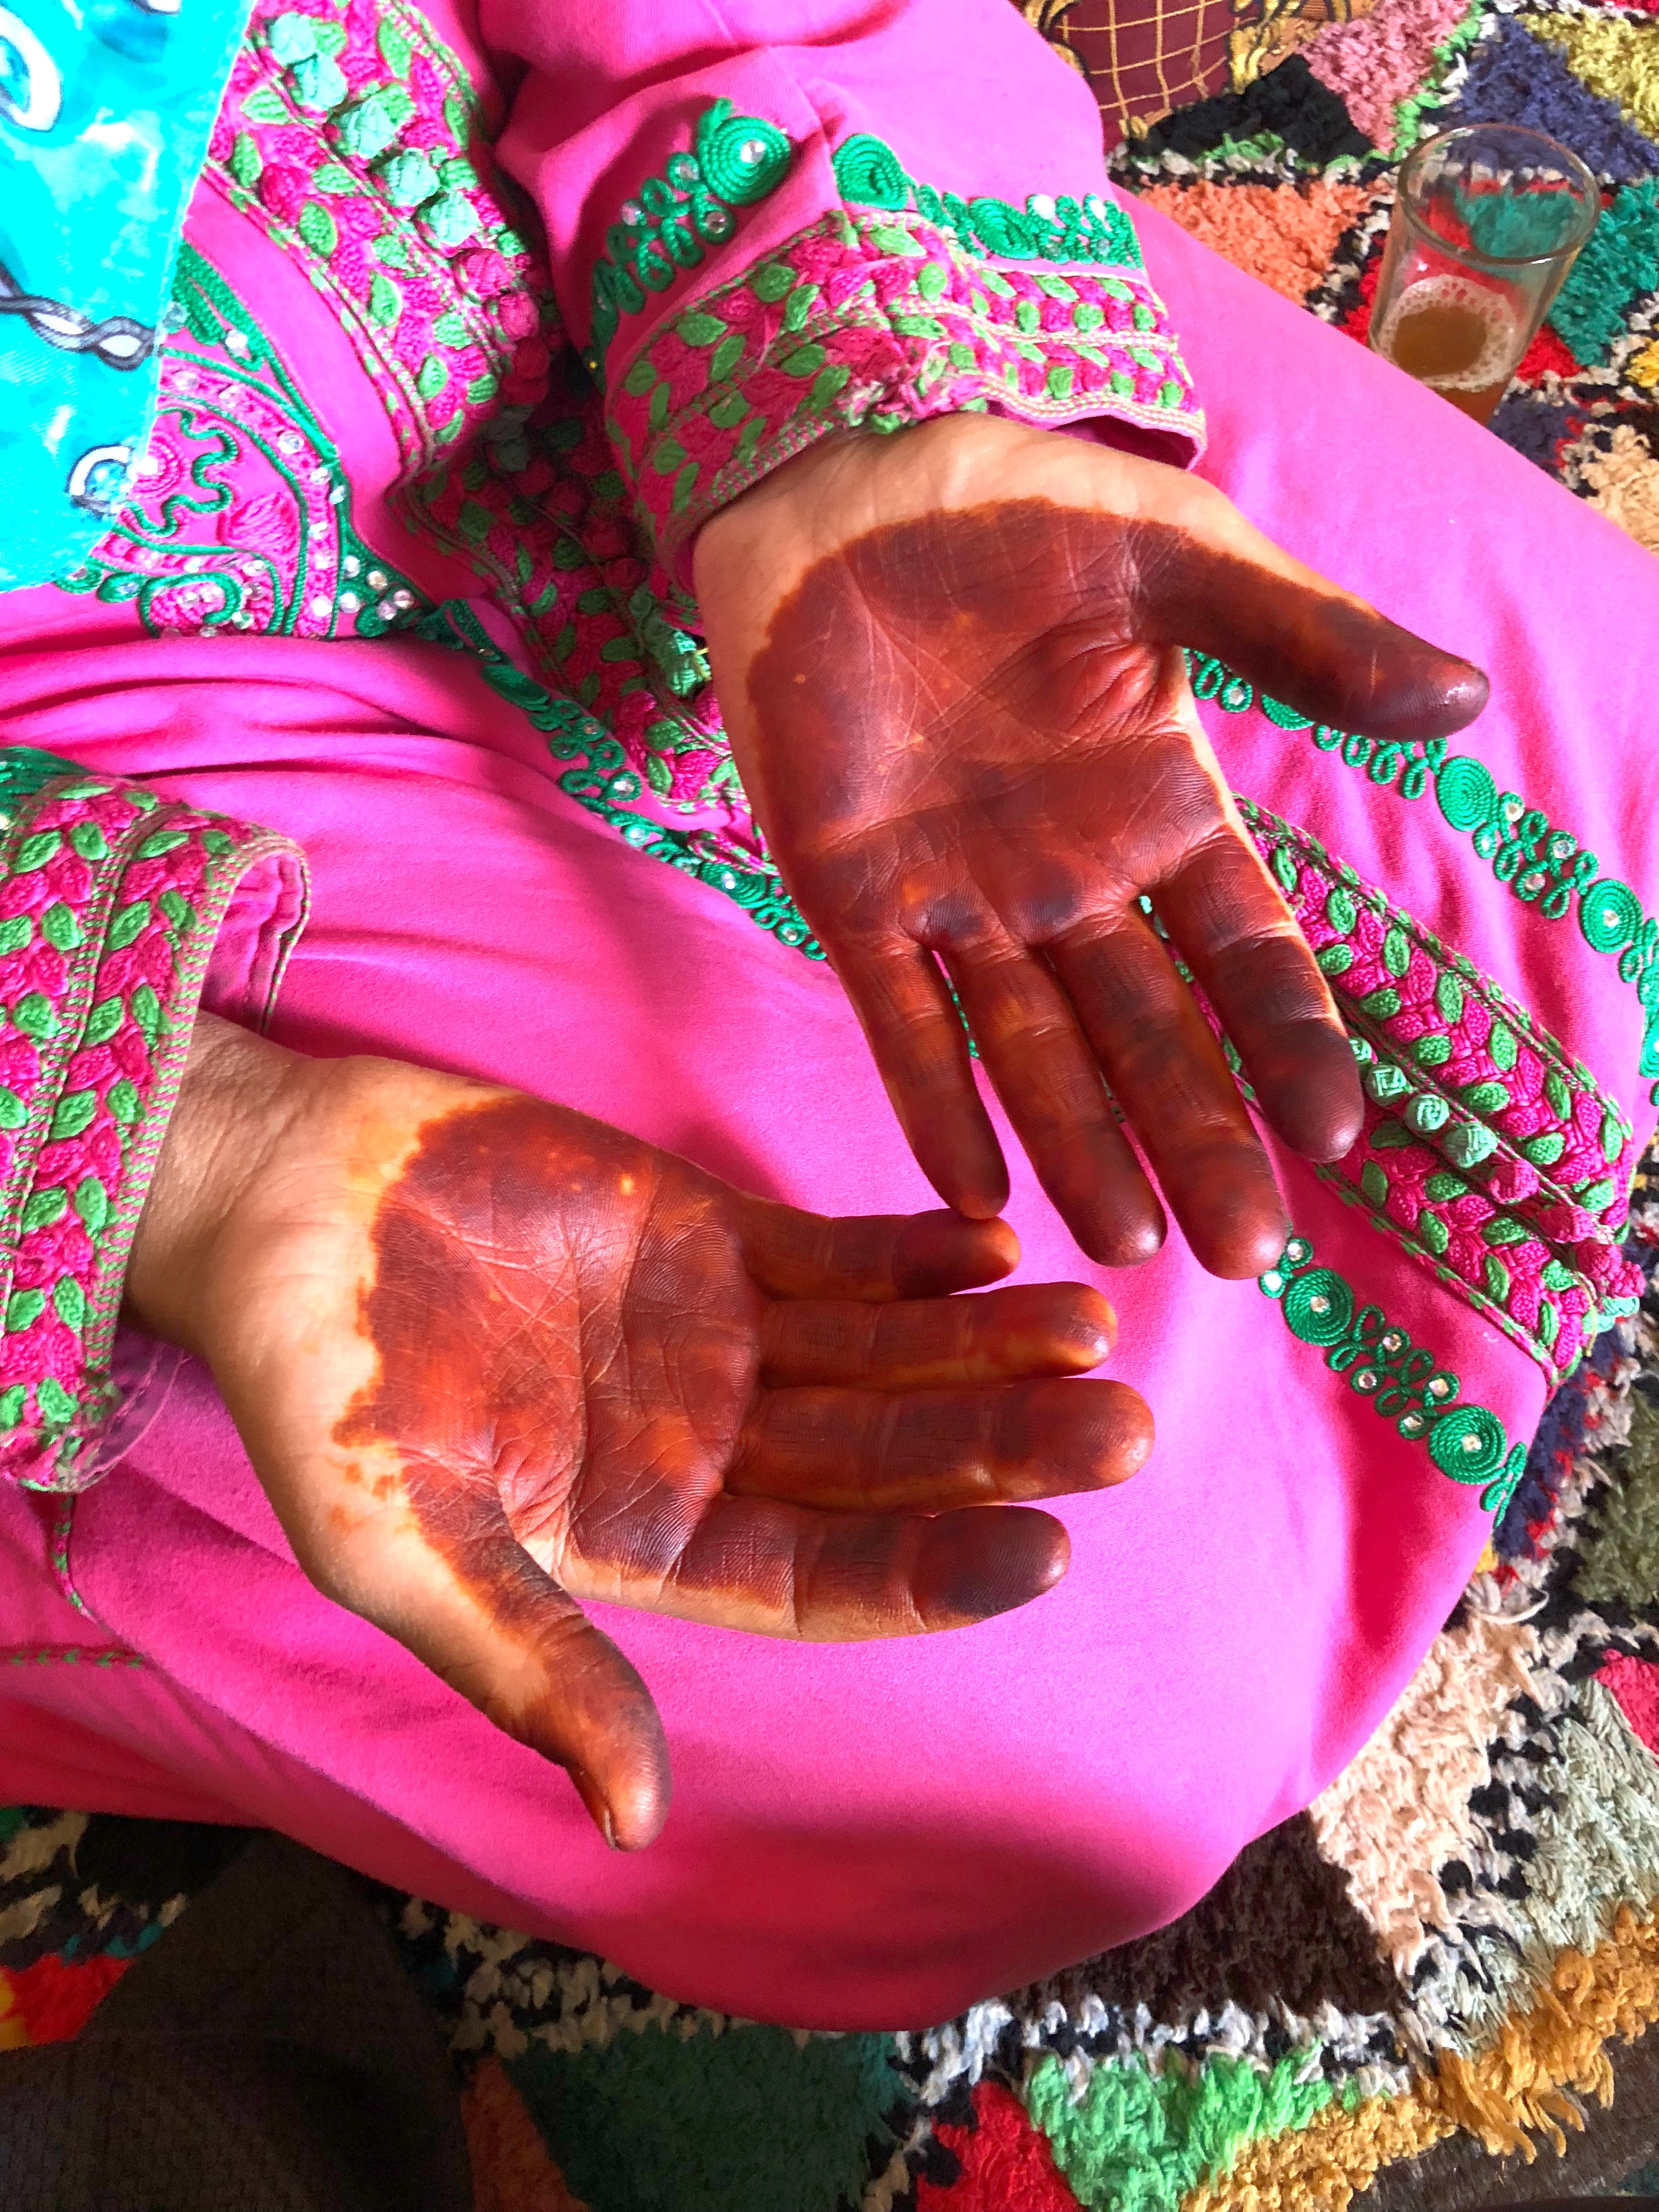 henna-hands-morocco-sahara-tazarine-mehndi-powder-red-tattoo-art-artist-traditional-beauty-hair.png